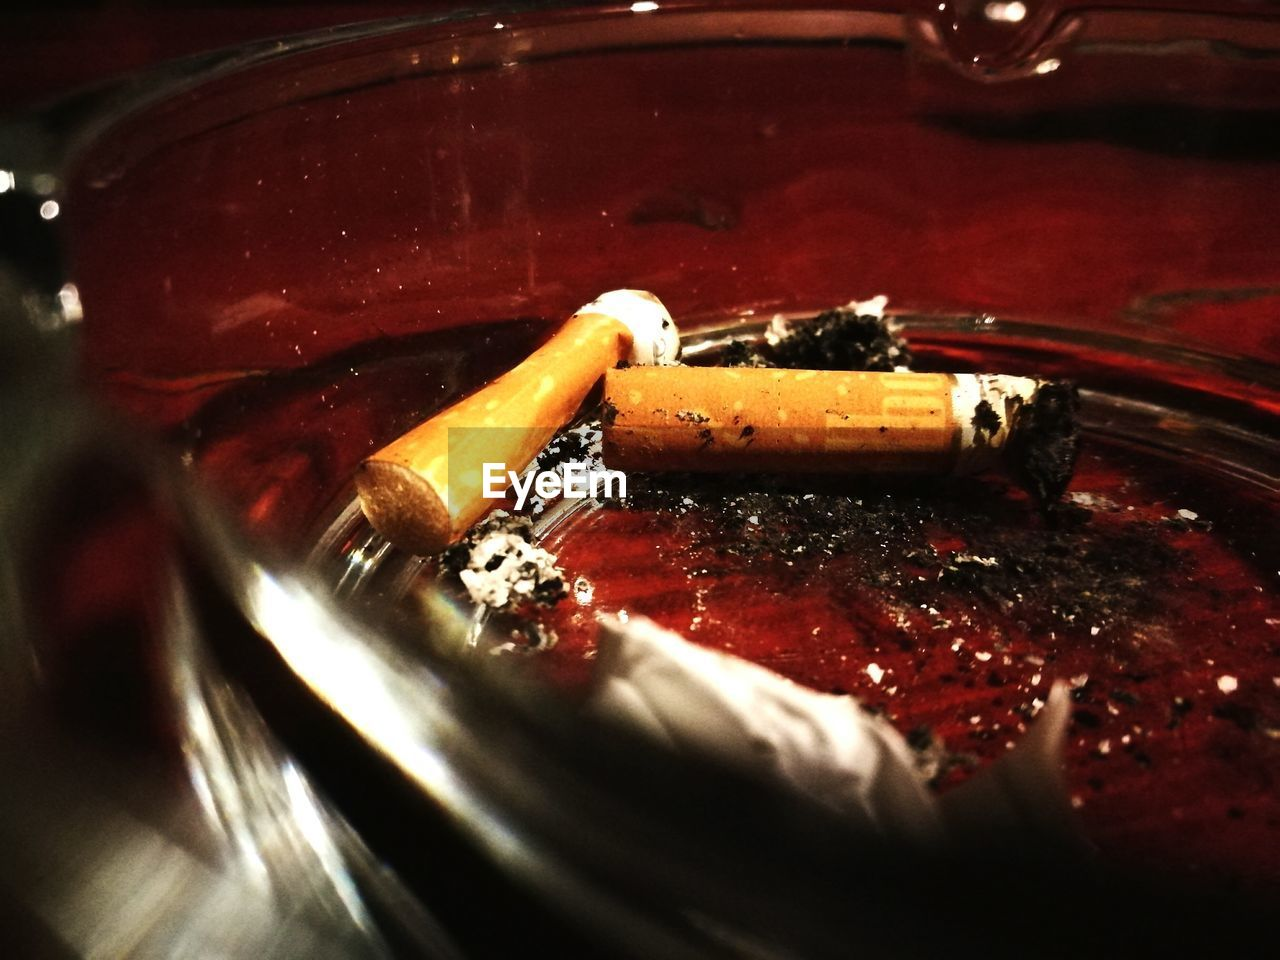 bad habit, addiction, smoking issues, cigarette, cigarette butt, ashtray, danger, close-up, ash, risk, social issues, table, indoors, no people, red, day